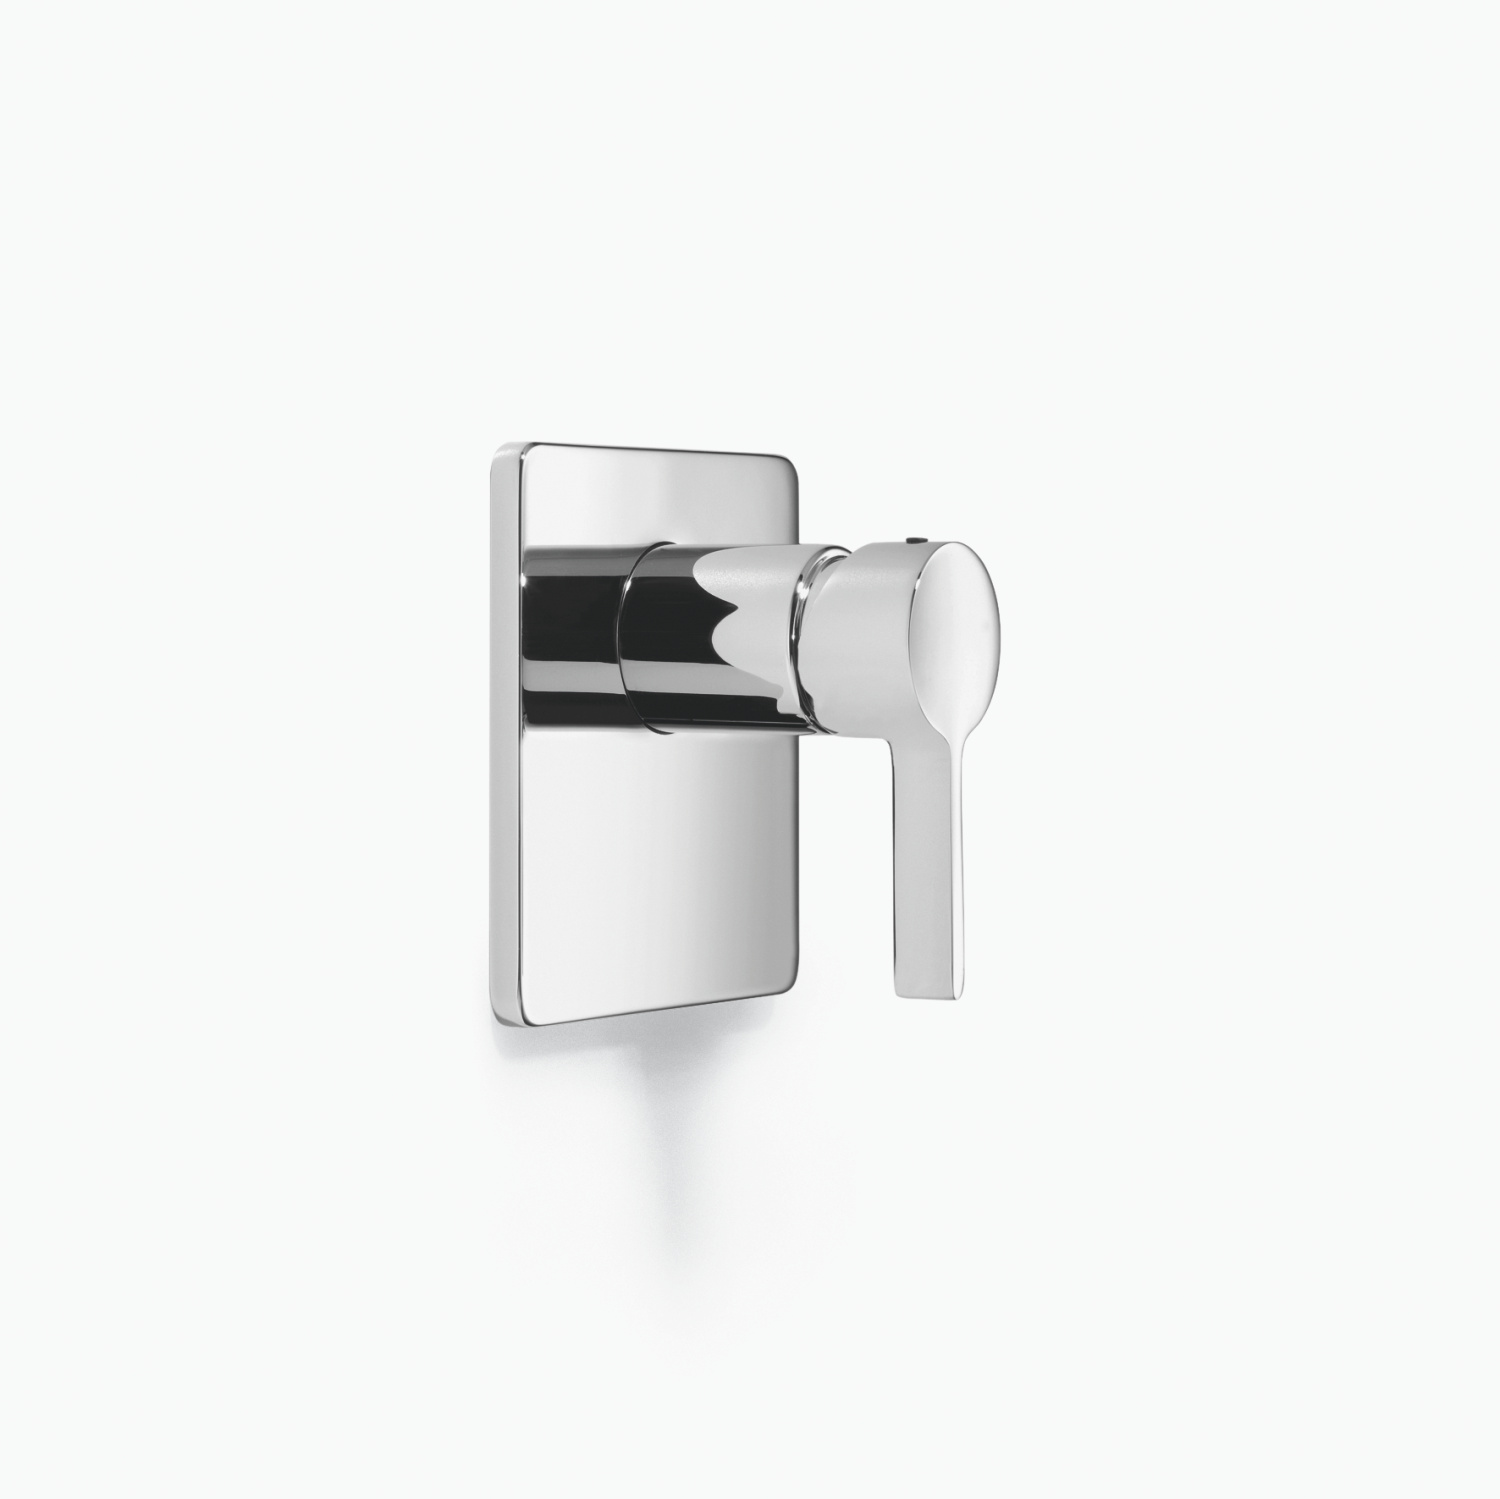 xSTREAM Concealed single-lever mixer without diverter - polished chrome - 36 015 710-00